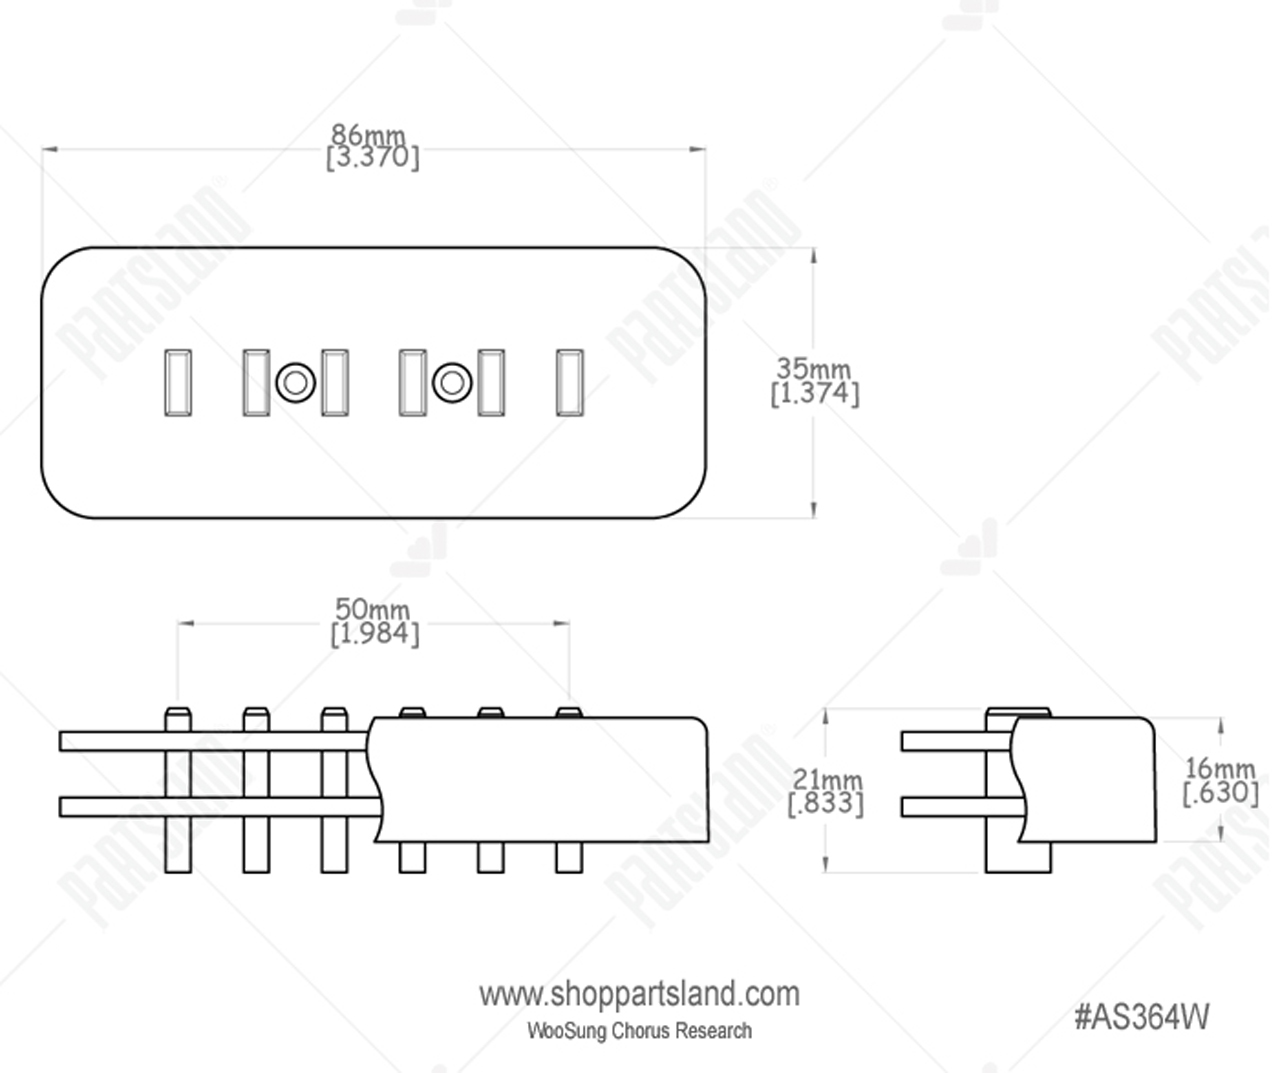 [SCHEMATICS_4HG]  Roswell Pickups P90 Staple Ivory | MUSIC STORE professional | en-OE | Roswell Wiring Diagram |  | MUSIC STORE